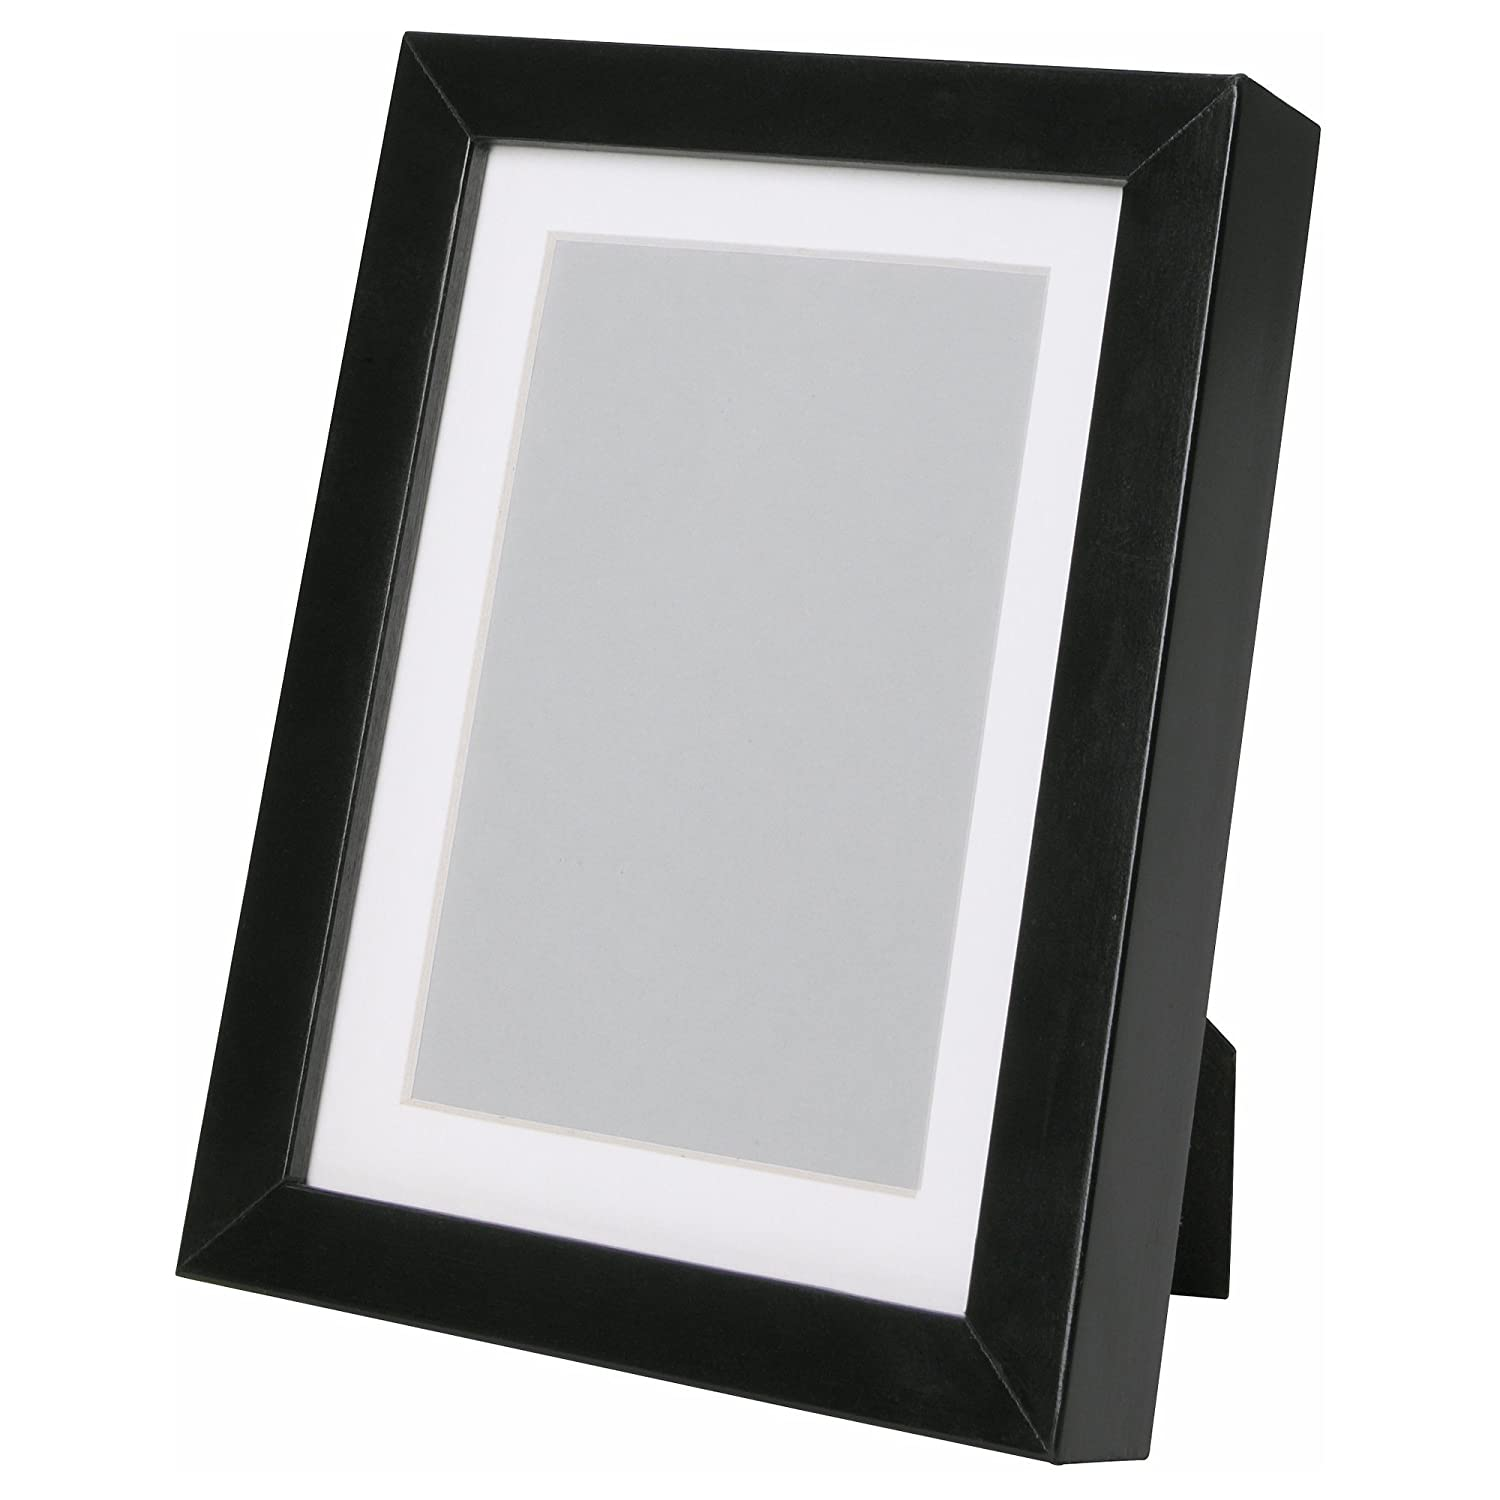 Amazoncom Ikea Frame 85 X 11 Black Photo Picture 2 Pack